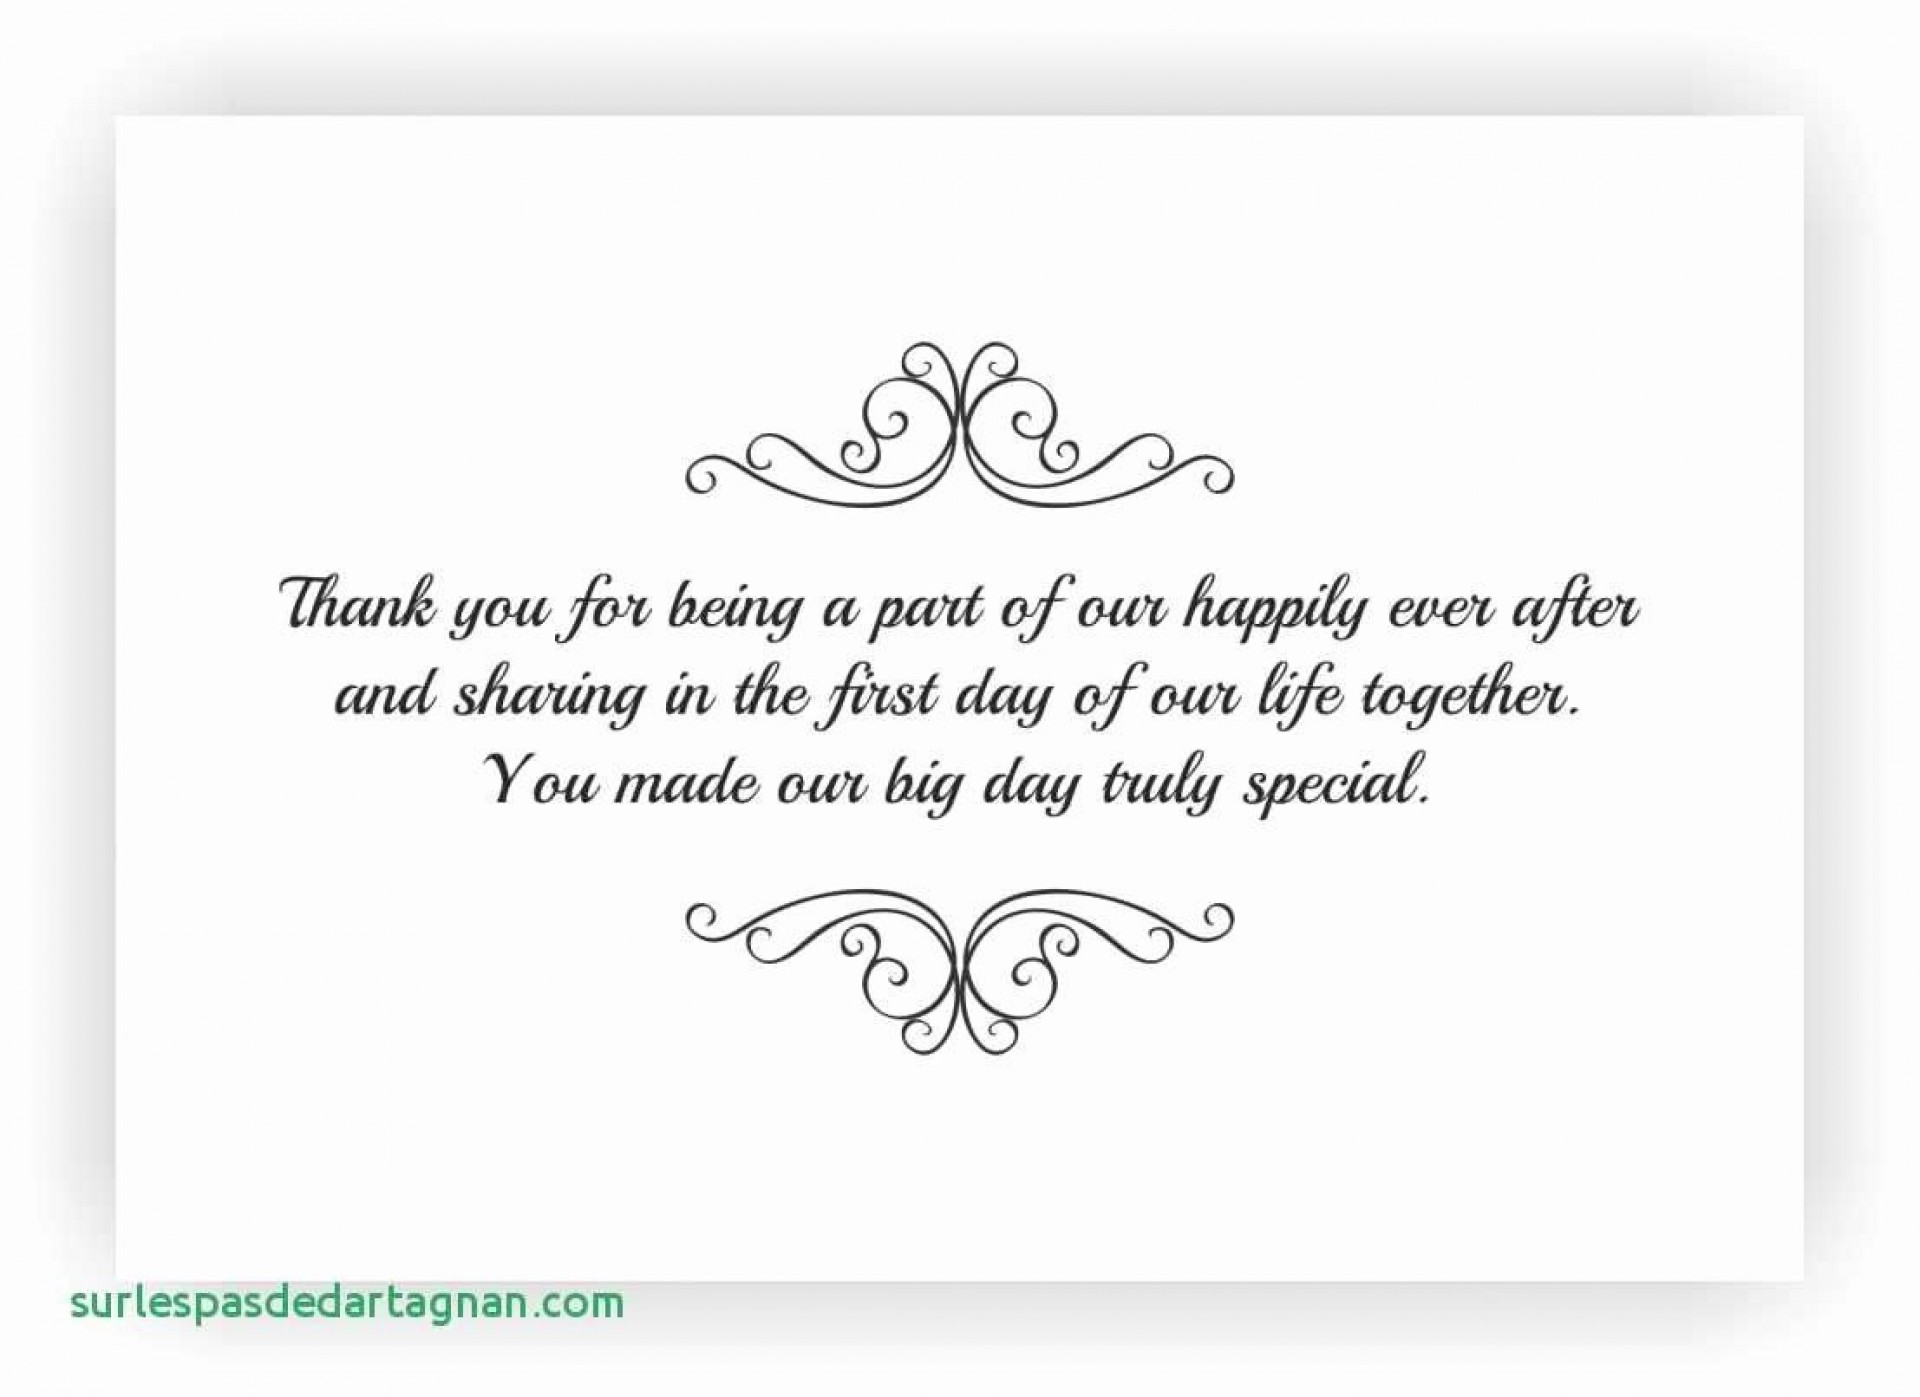 003 Breathtaking Thank You Note Template Wedding Money High Resolution  Card Example For Sample Cash Gift1920